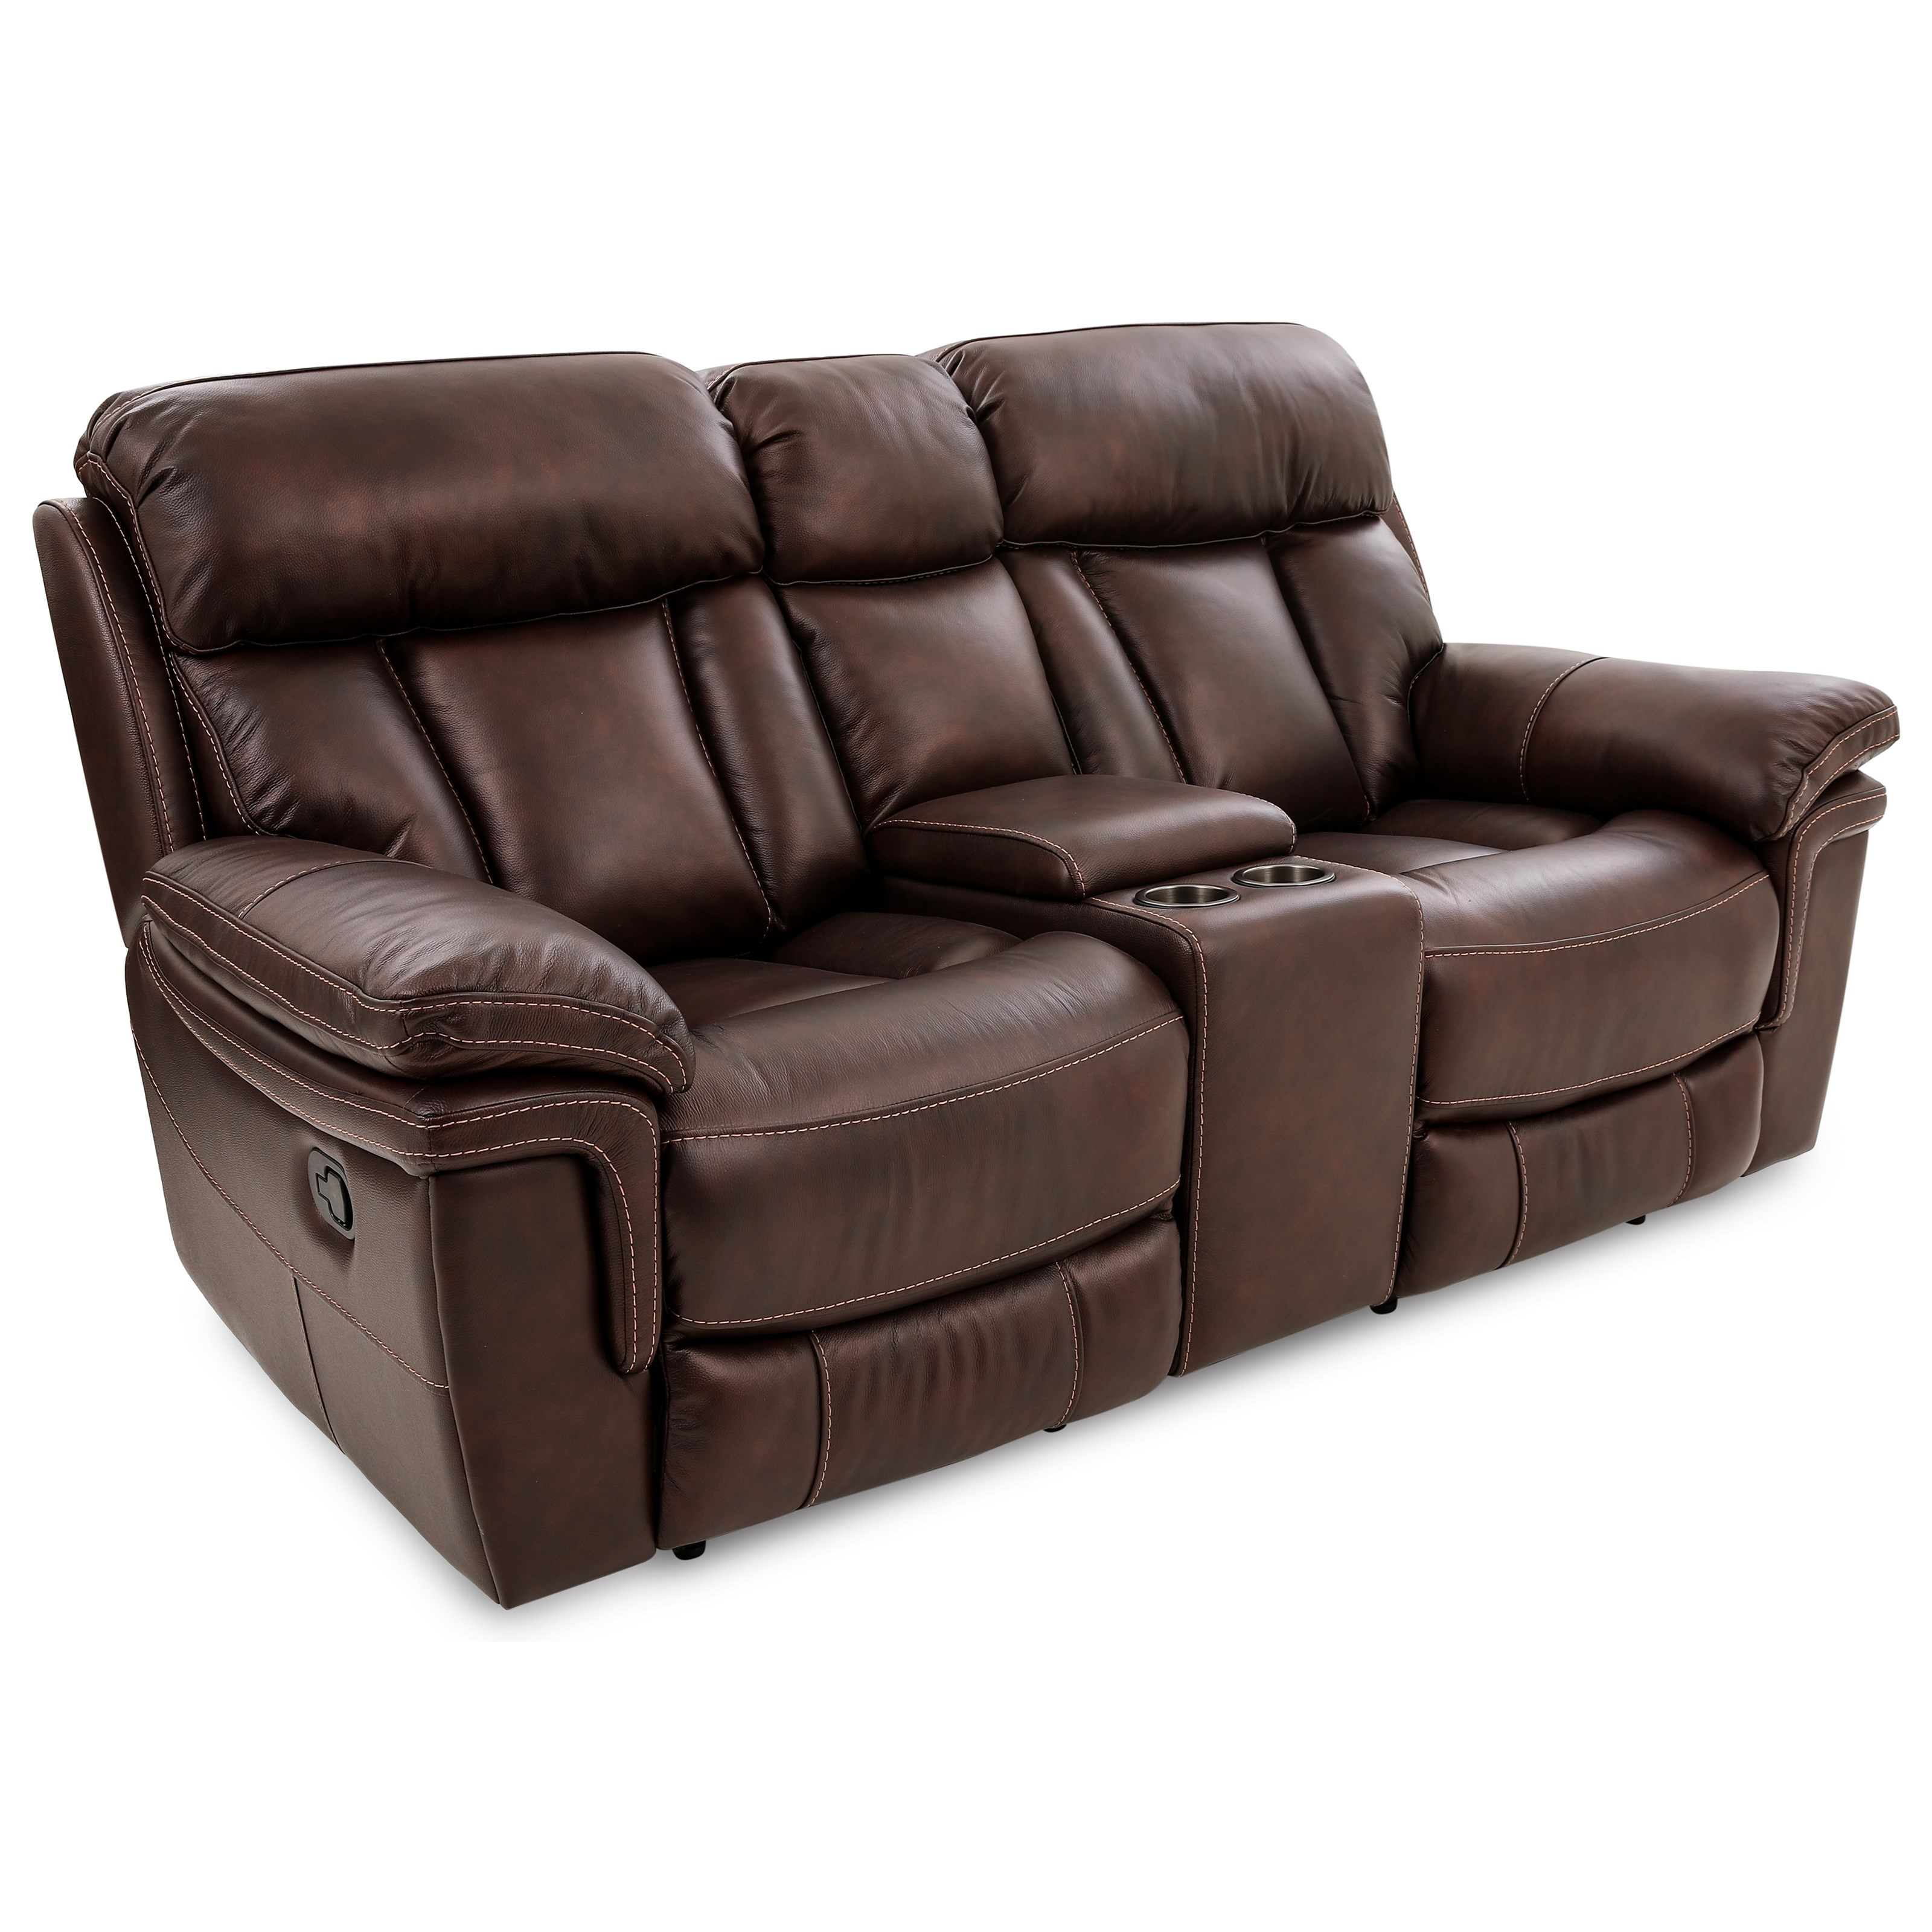 Bryant PWR HD/FT LEATHER Reclining Love W/CONSOLE at Walker's Furniture